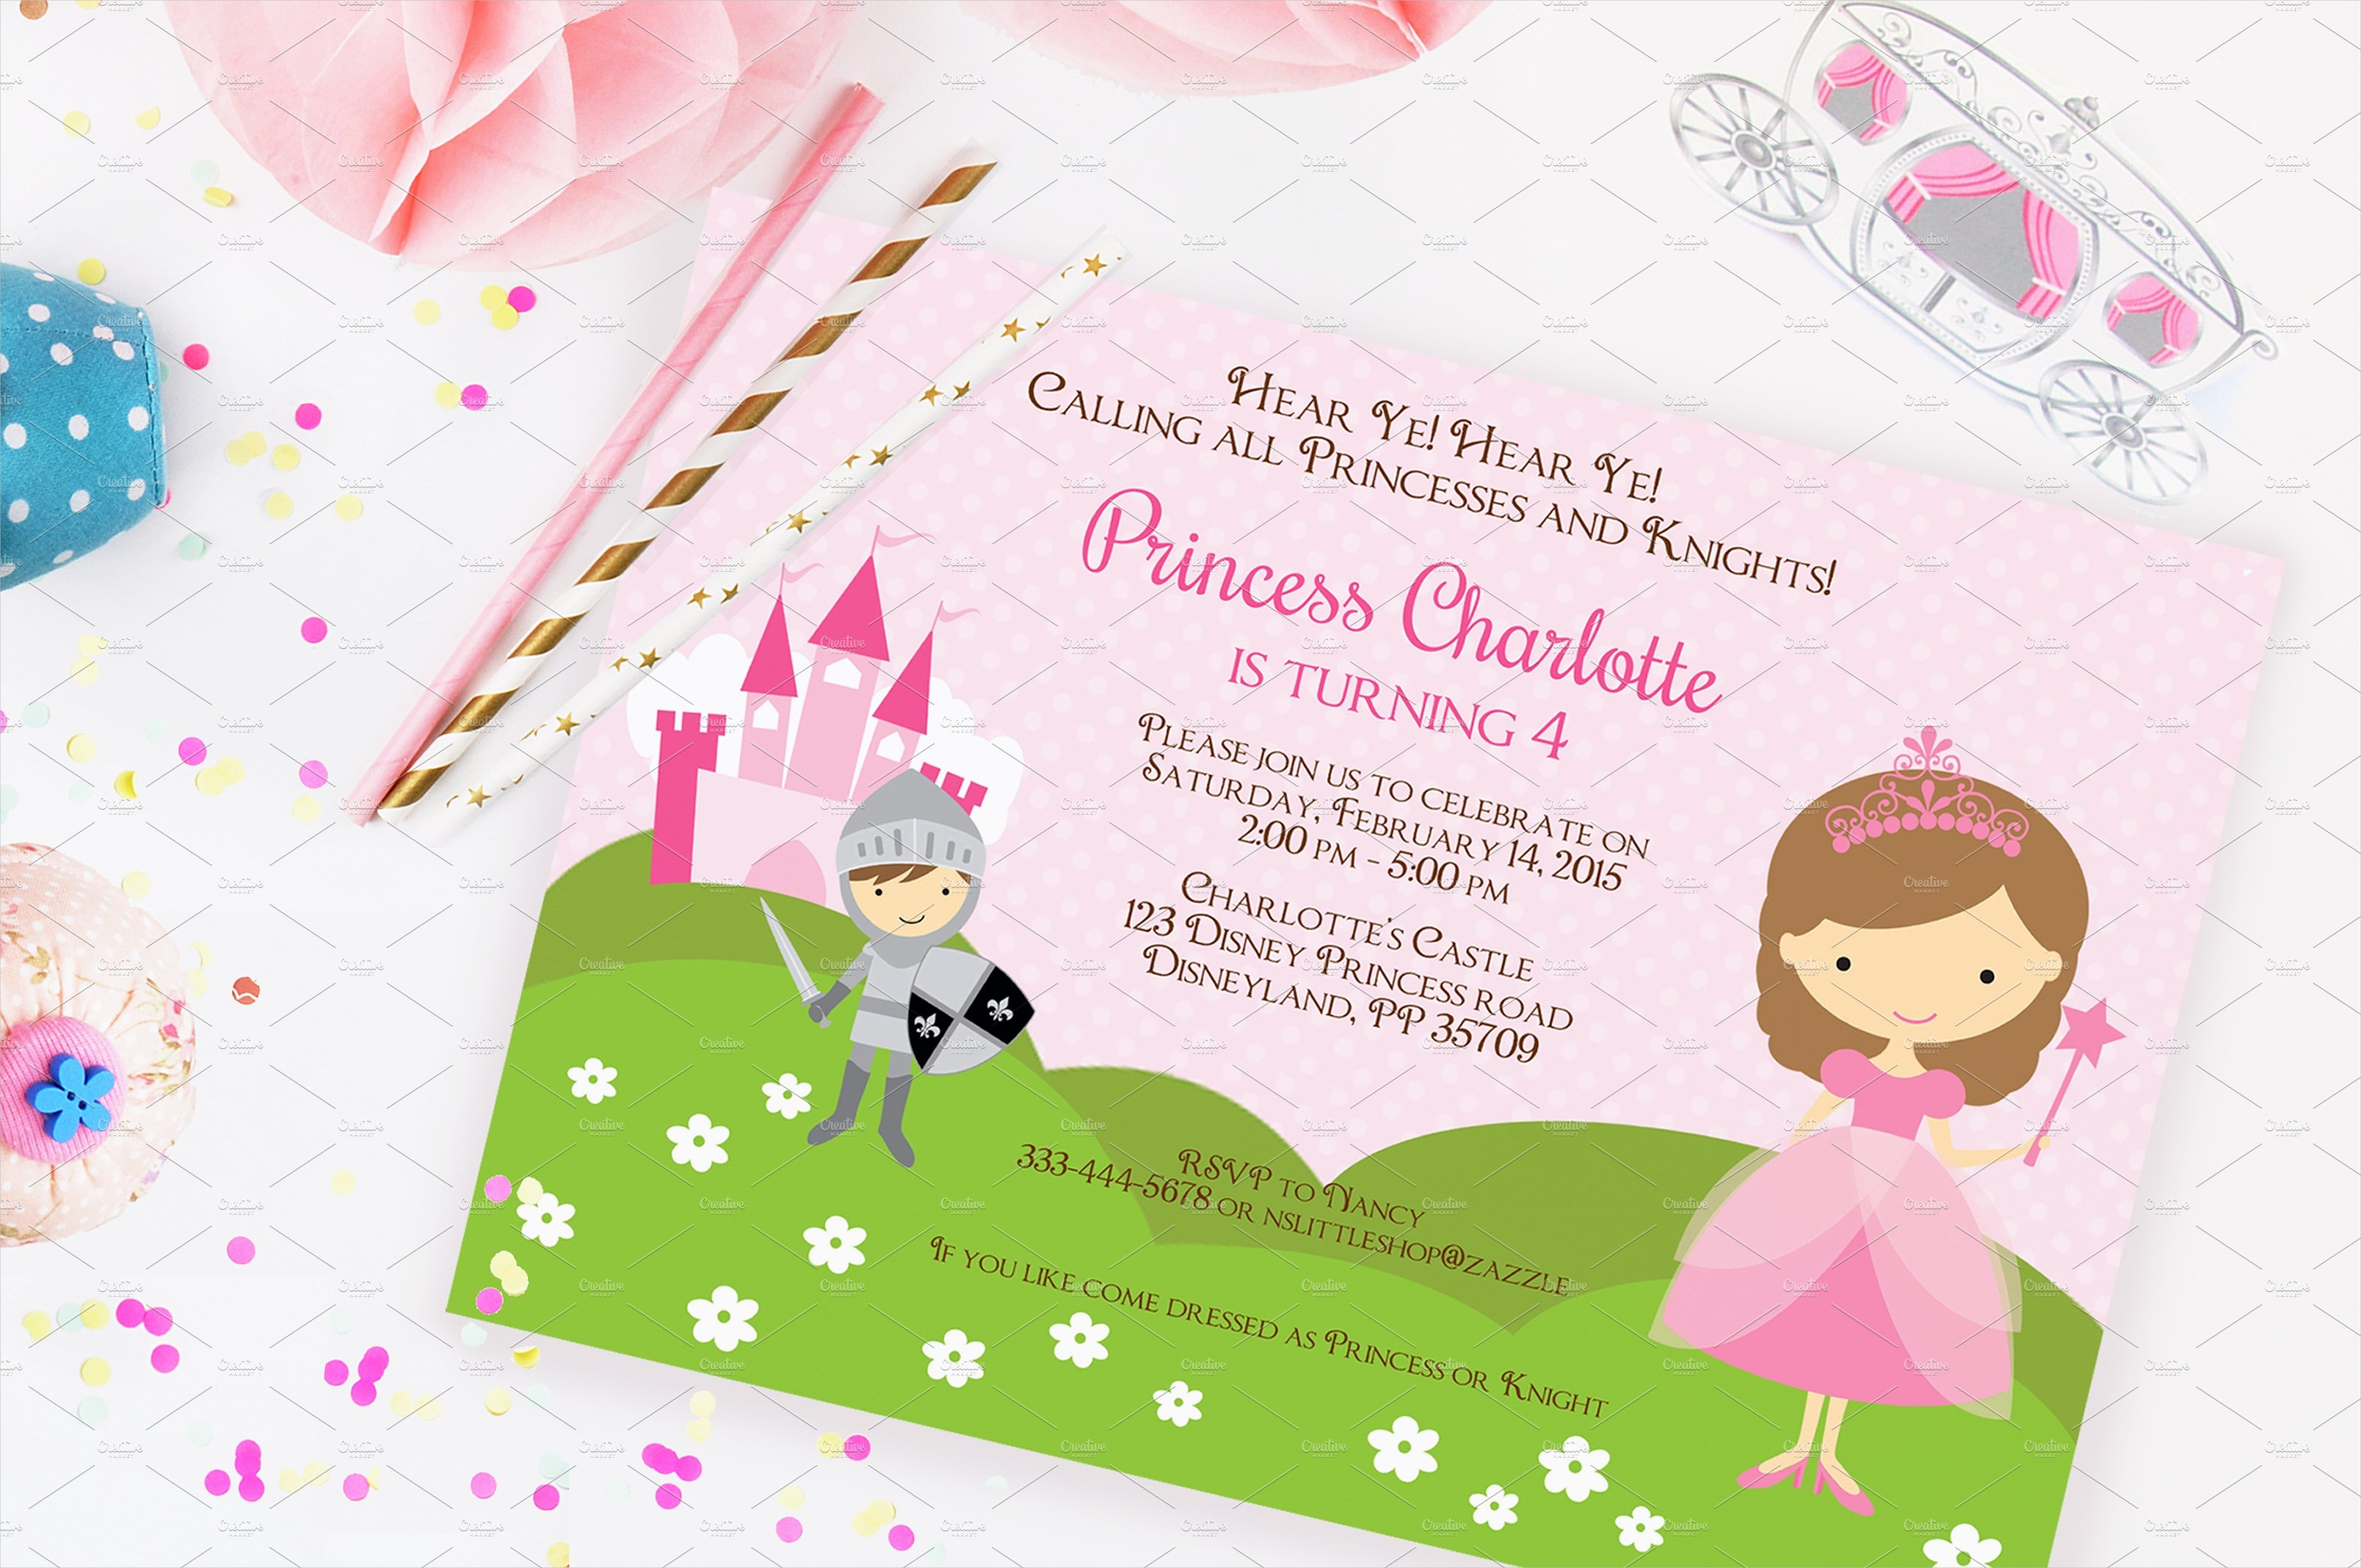 princess and knight party invitation